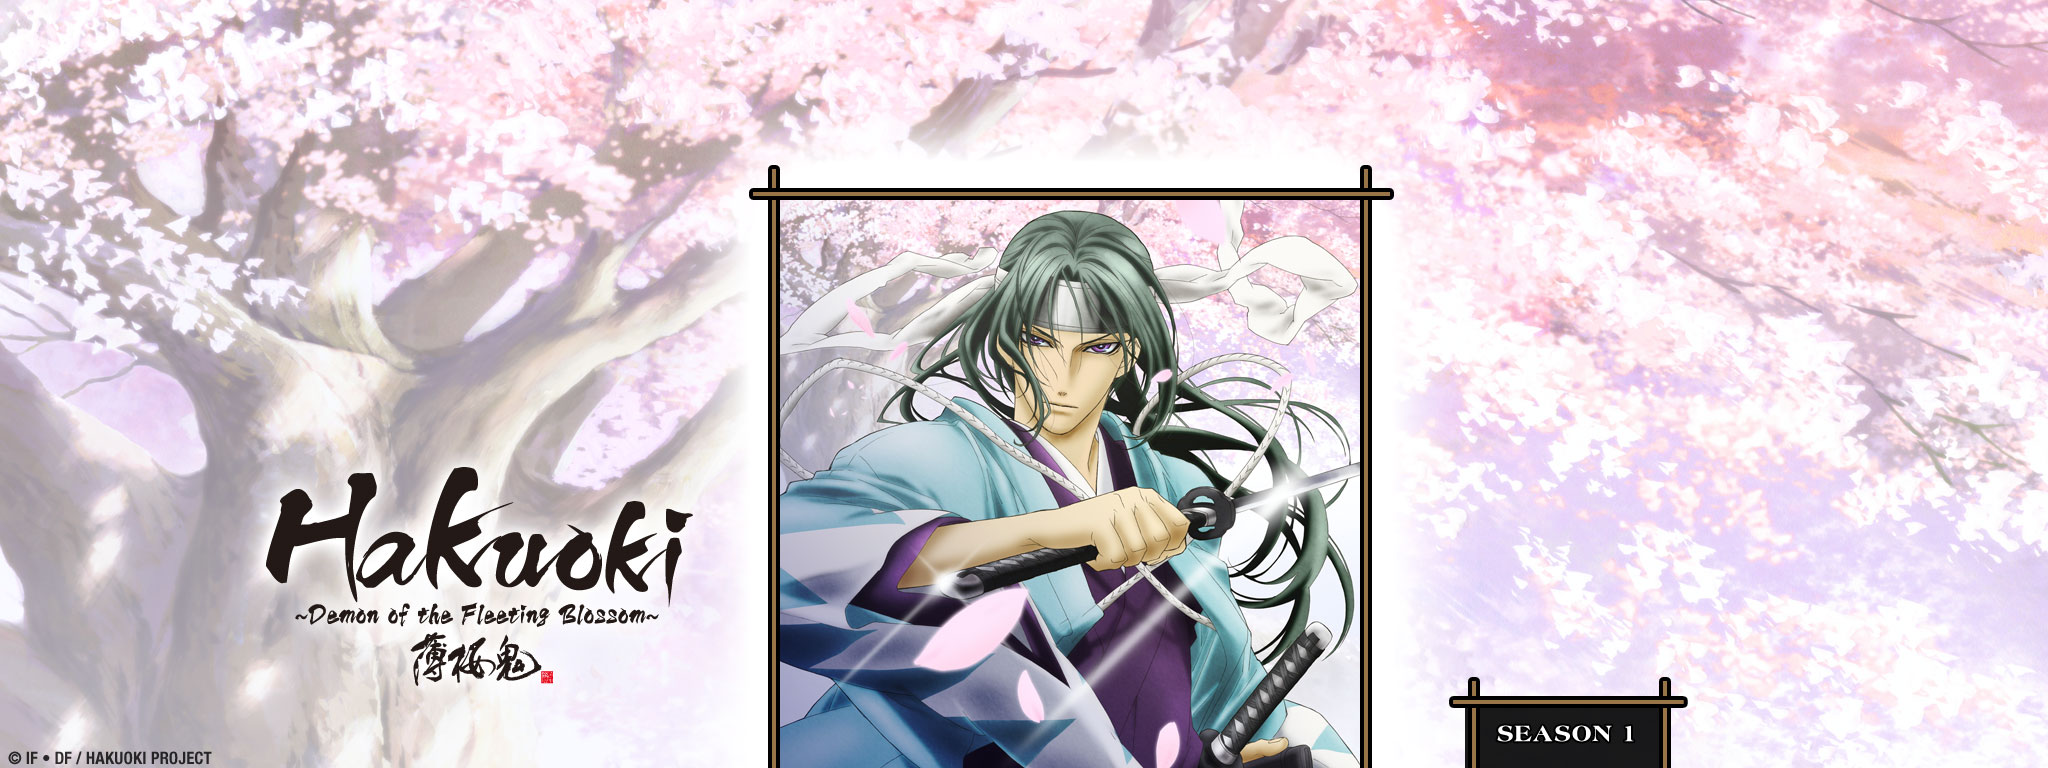 Hakuoki ~Demon of the Fleeting Blossom~